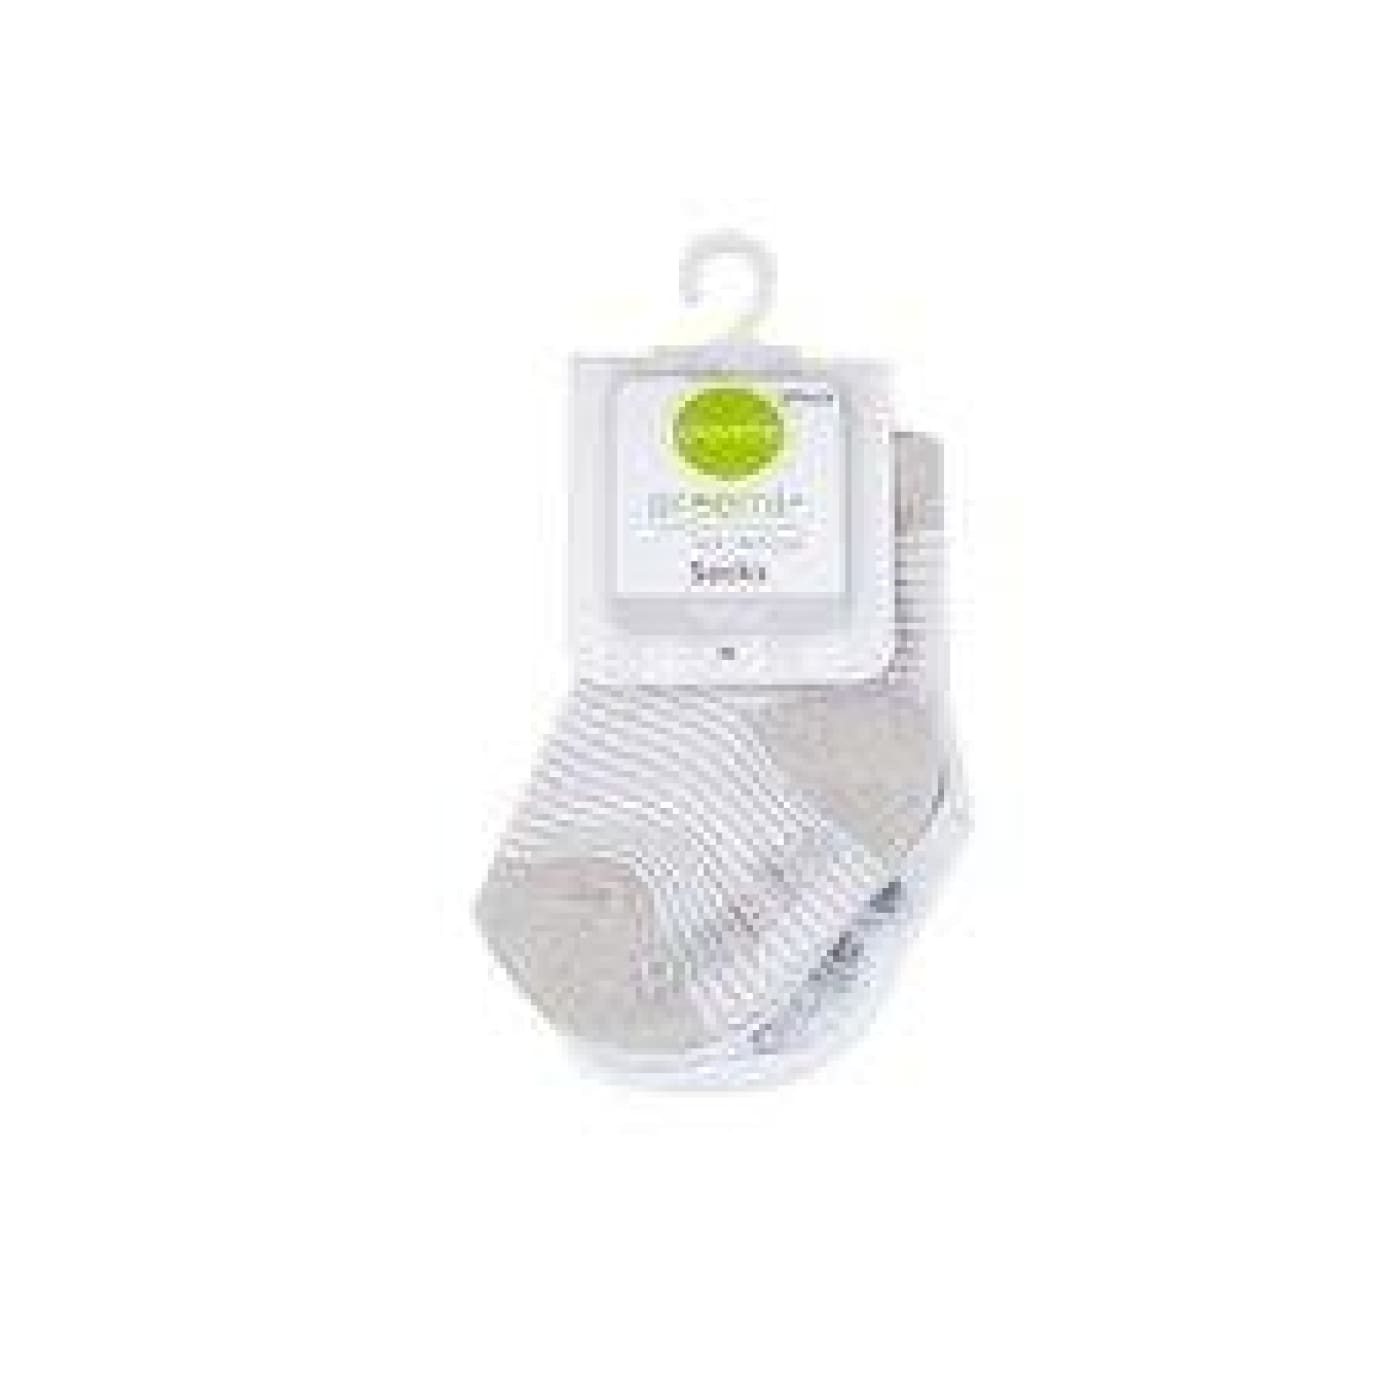 Playette Preemie Fashion Socks - Grey 2PK - Prem / Grey/White - BABY & TODDLER CLOTHING - MITTENS/SOCKS/SHOES